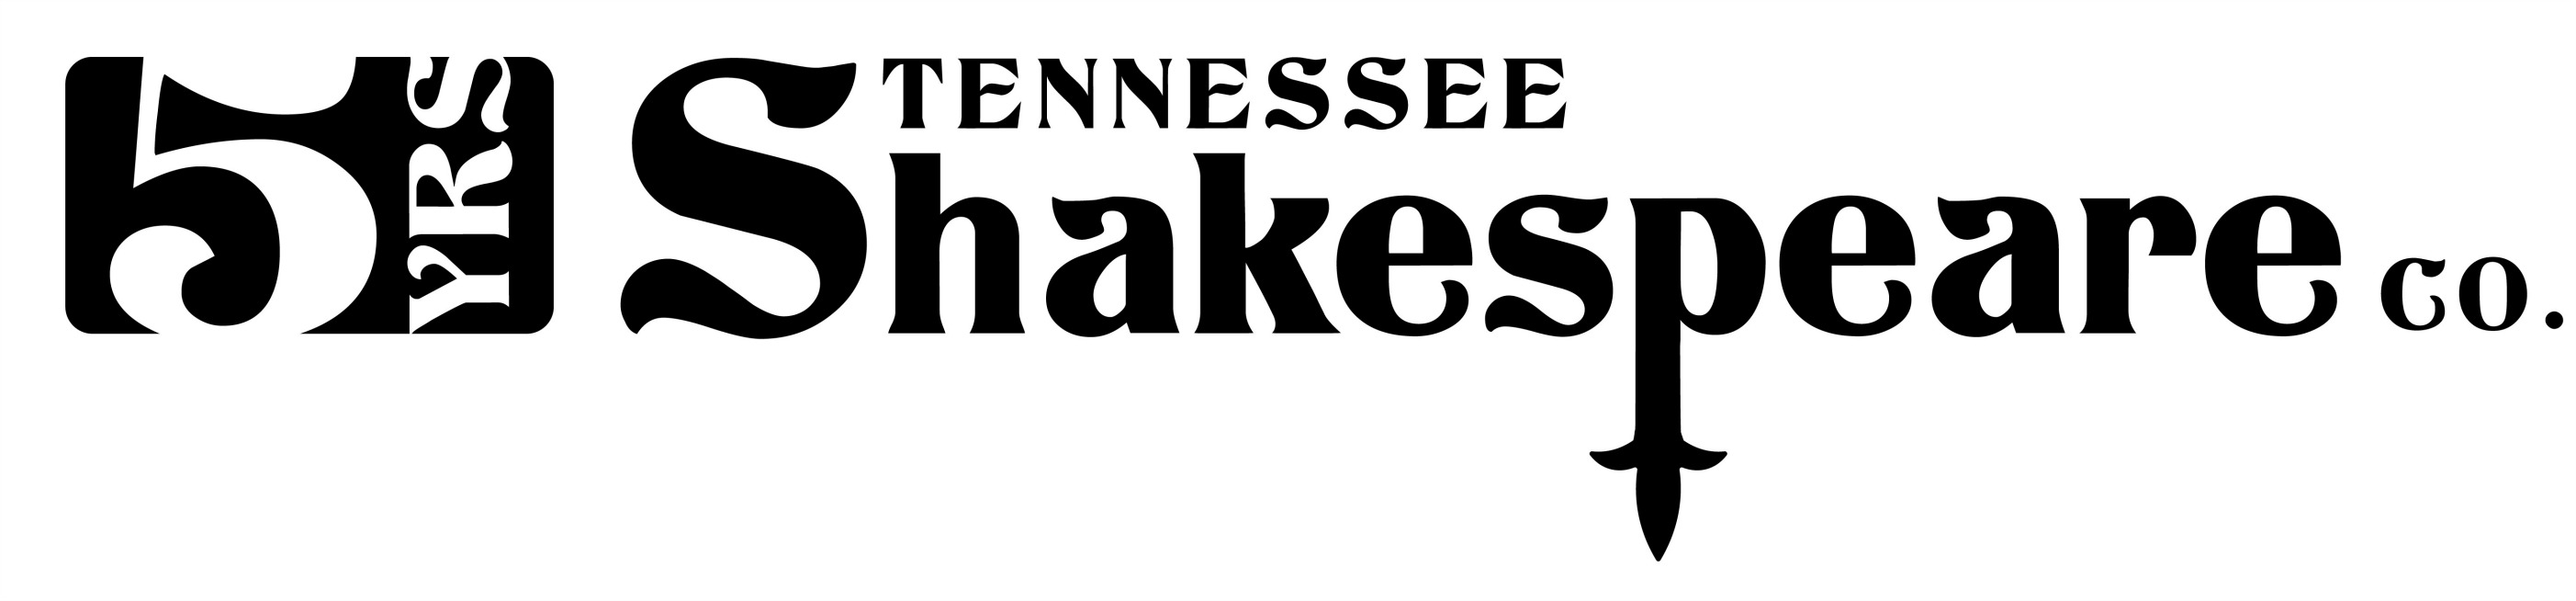 TN Shakespeare Co logo